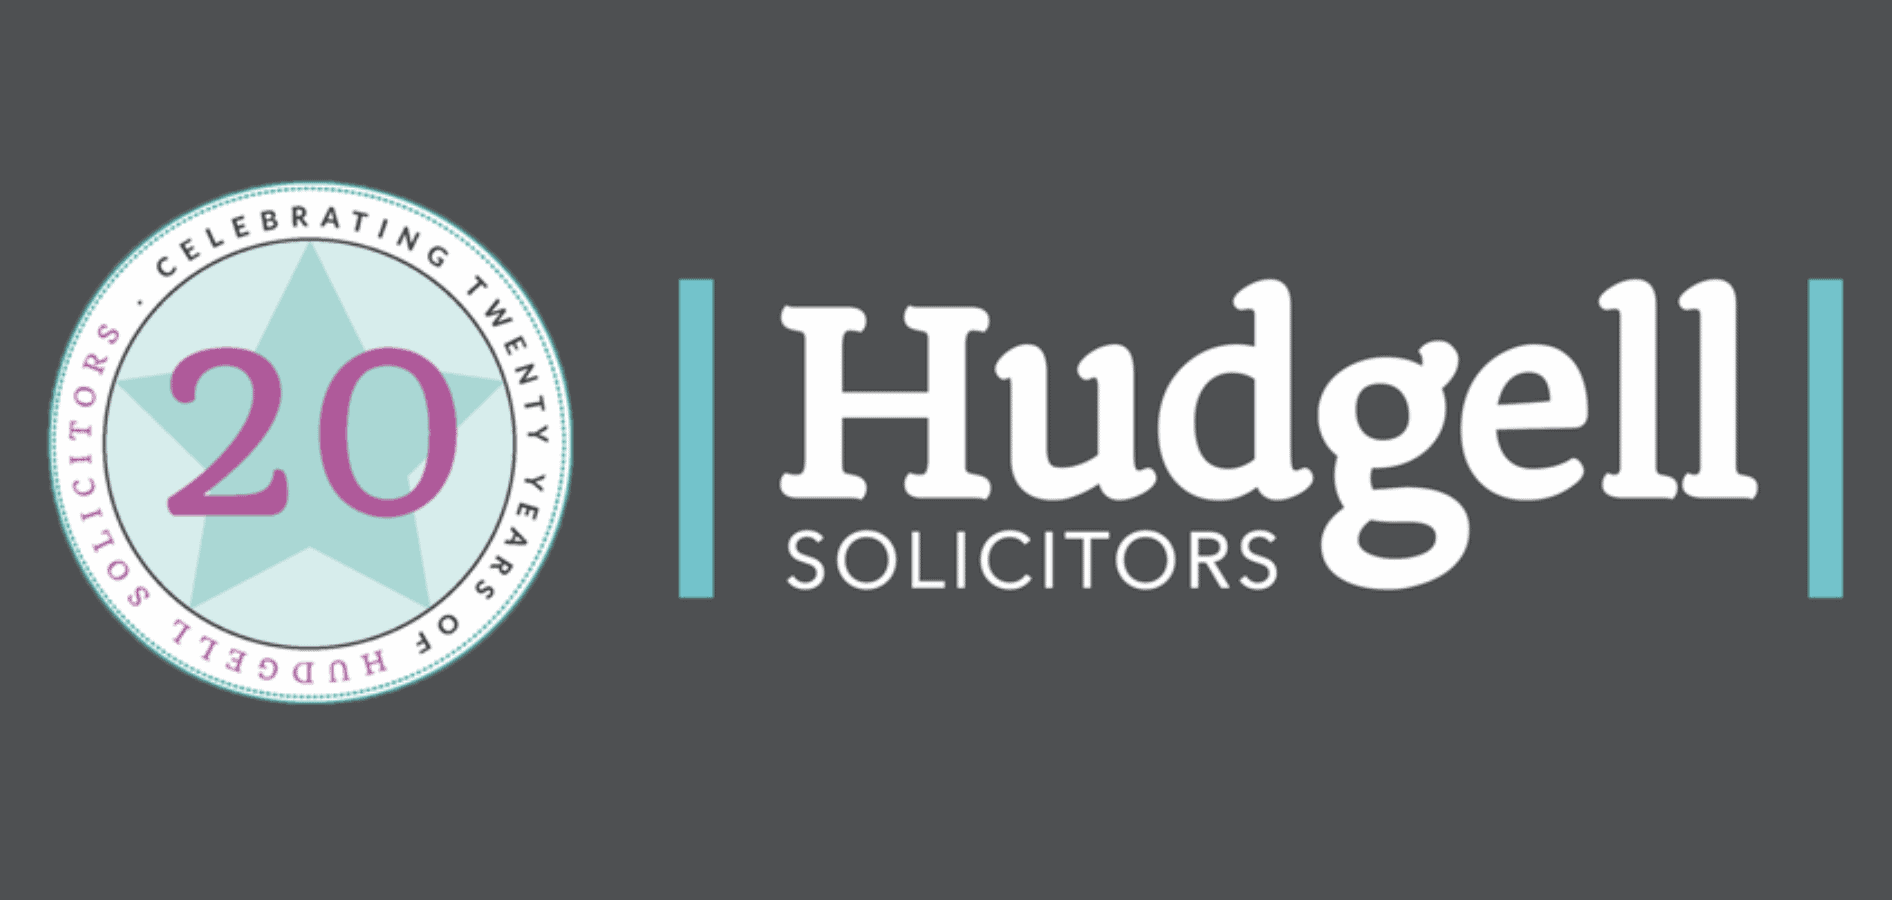 Suffered from Professional Negligence?